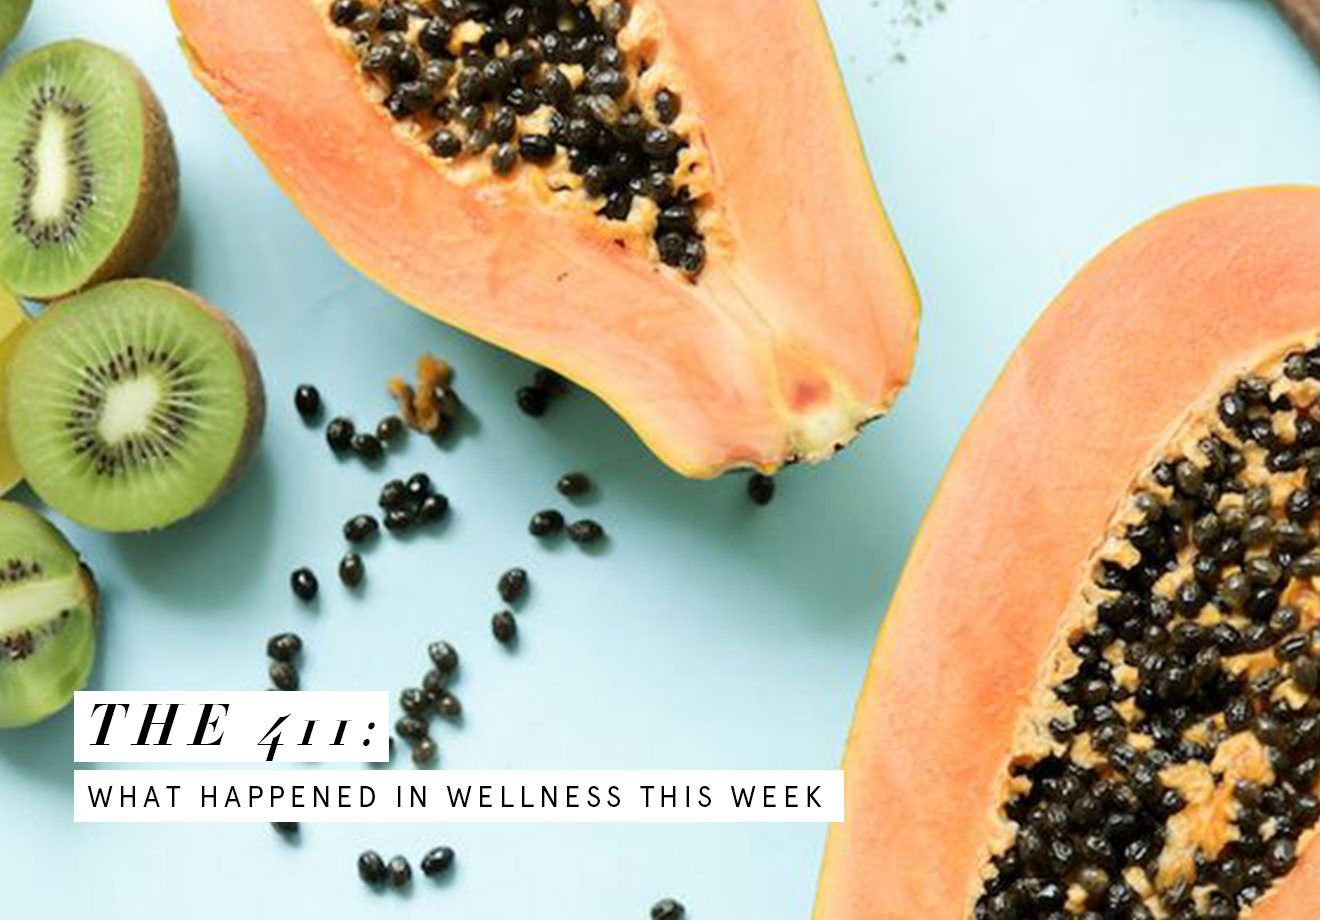 The 411: What Happened in Wellness This Week January 7th